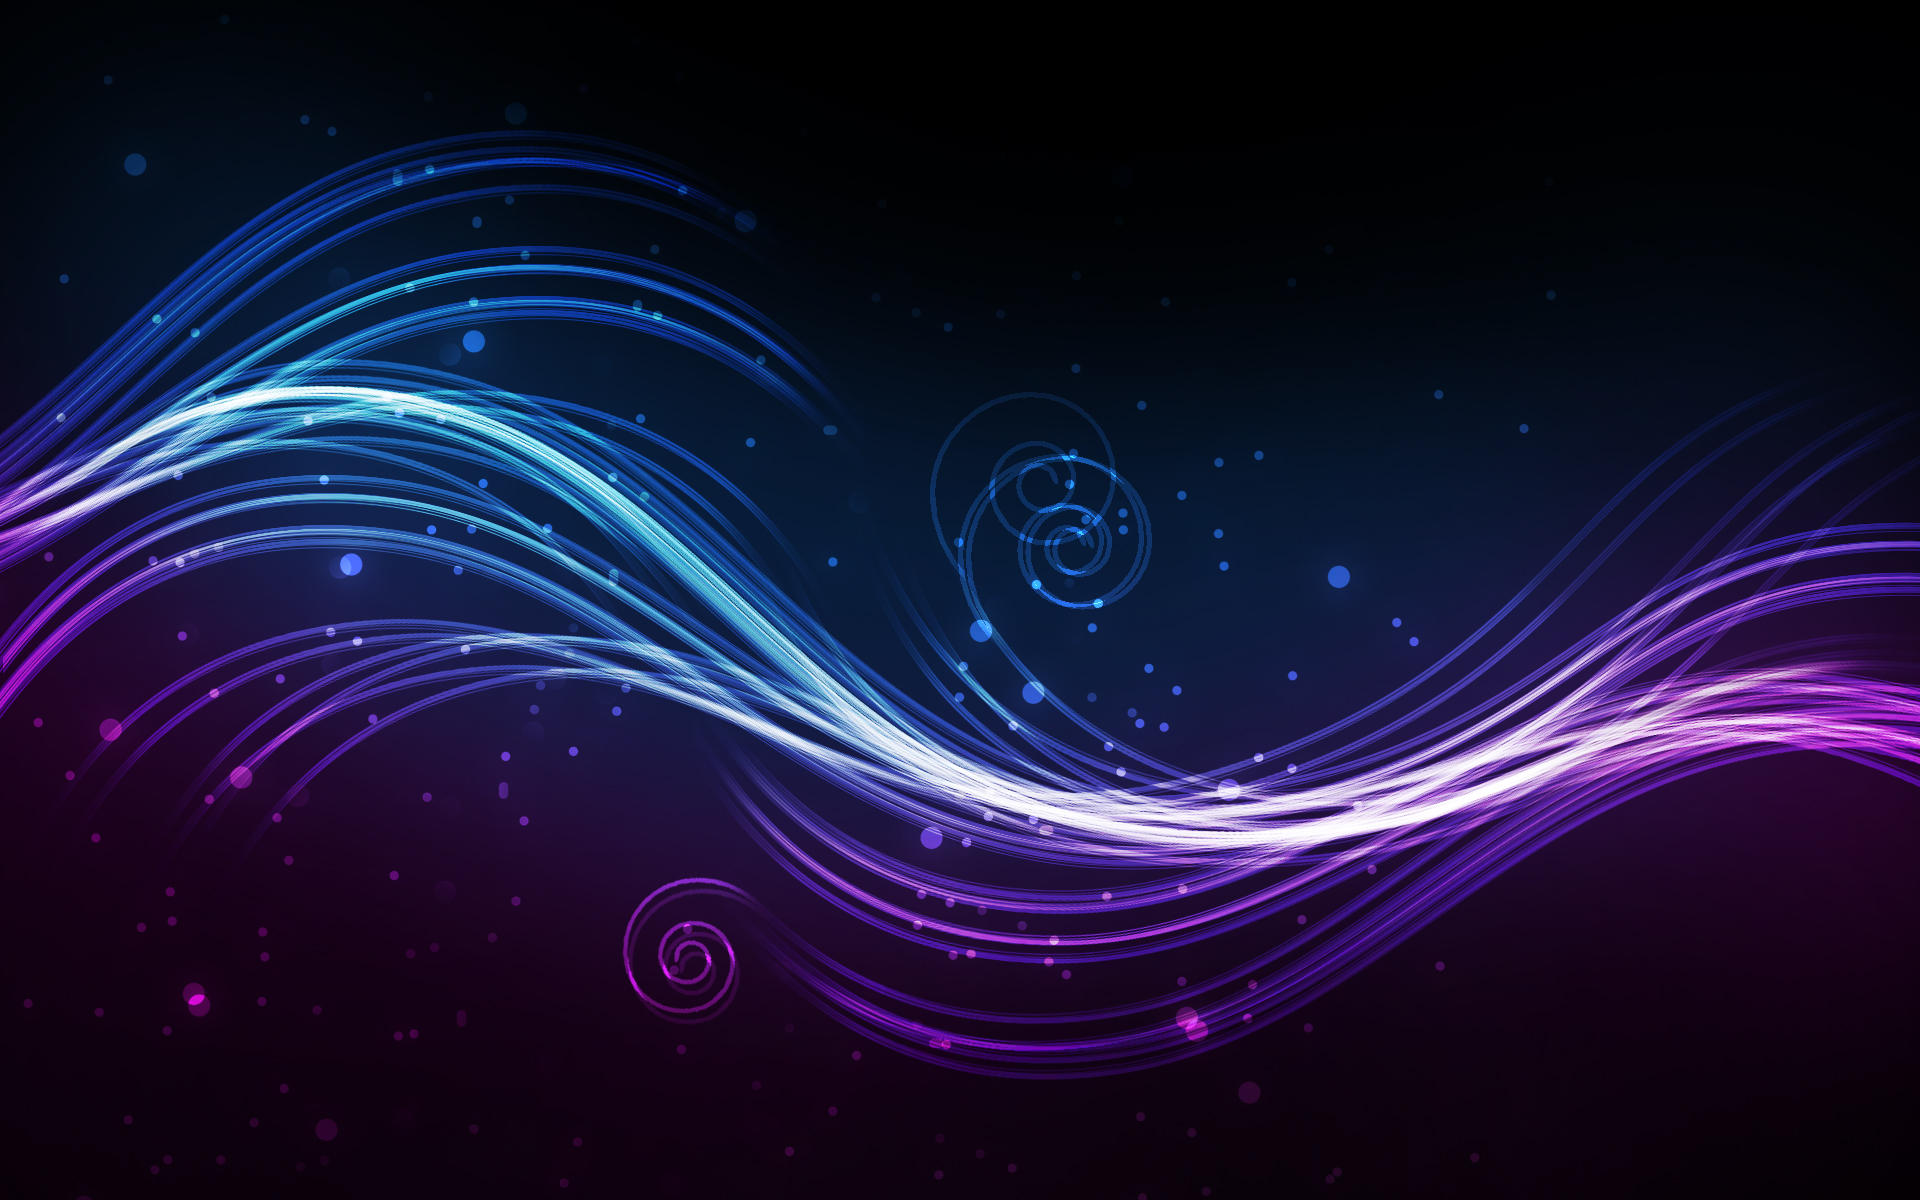 Glow wallpaper series no. 1 by yvaine2010